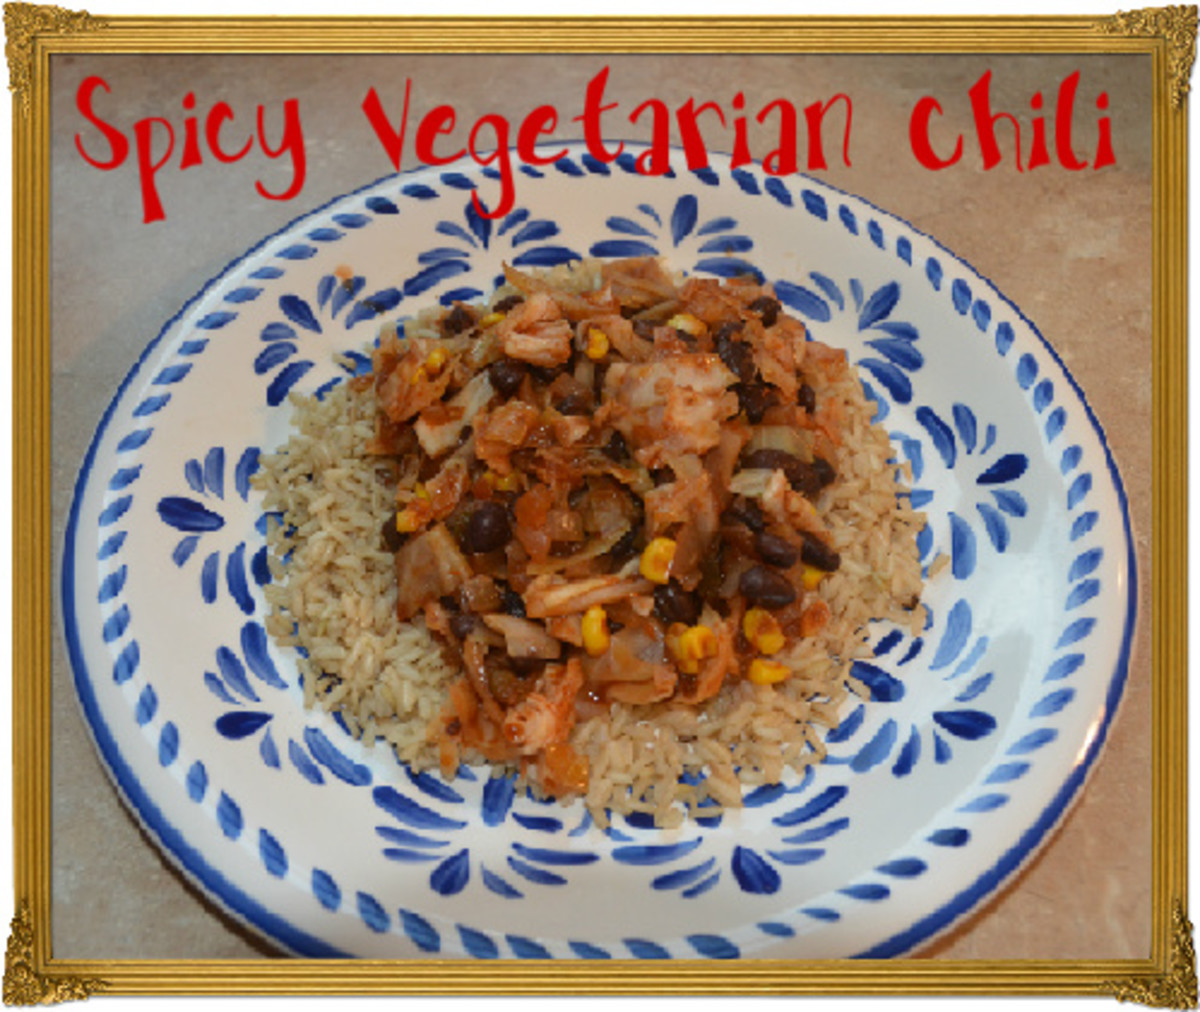 Spicy Vegetarian Chili with Cabbage and Black Beans served over brown rice